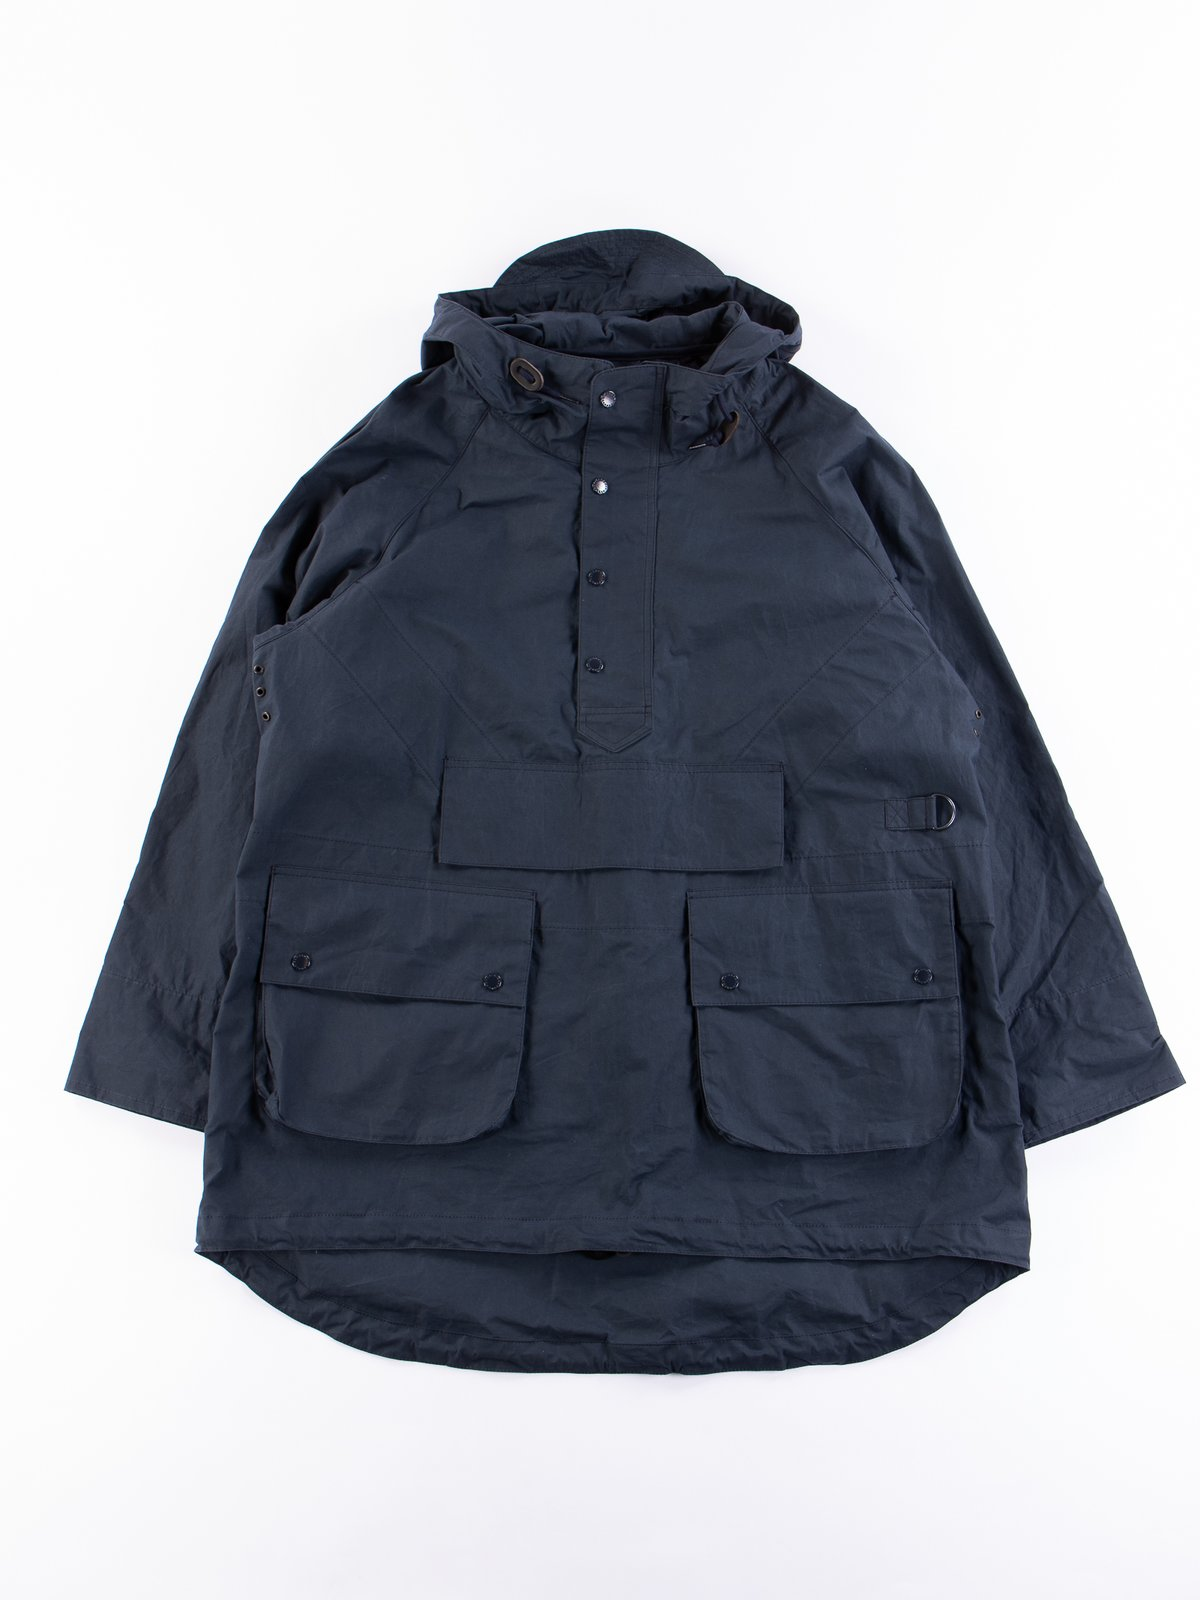 Navy Warby Jacket - Image 1